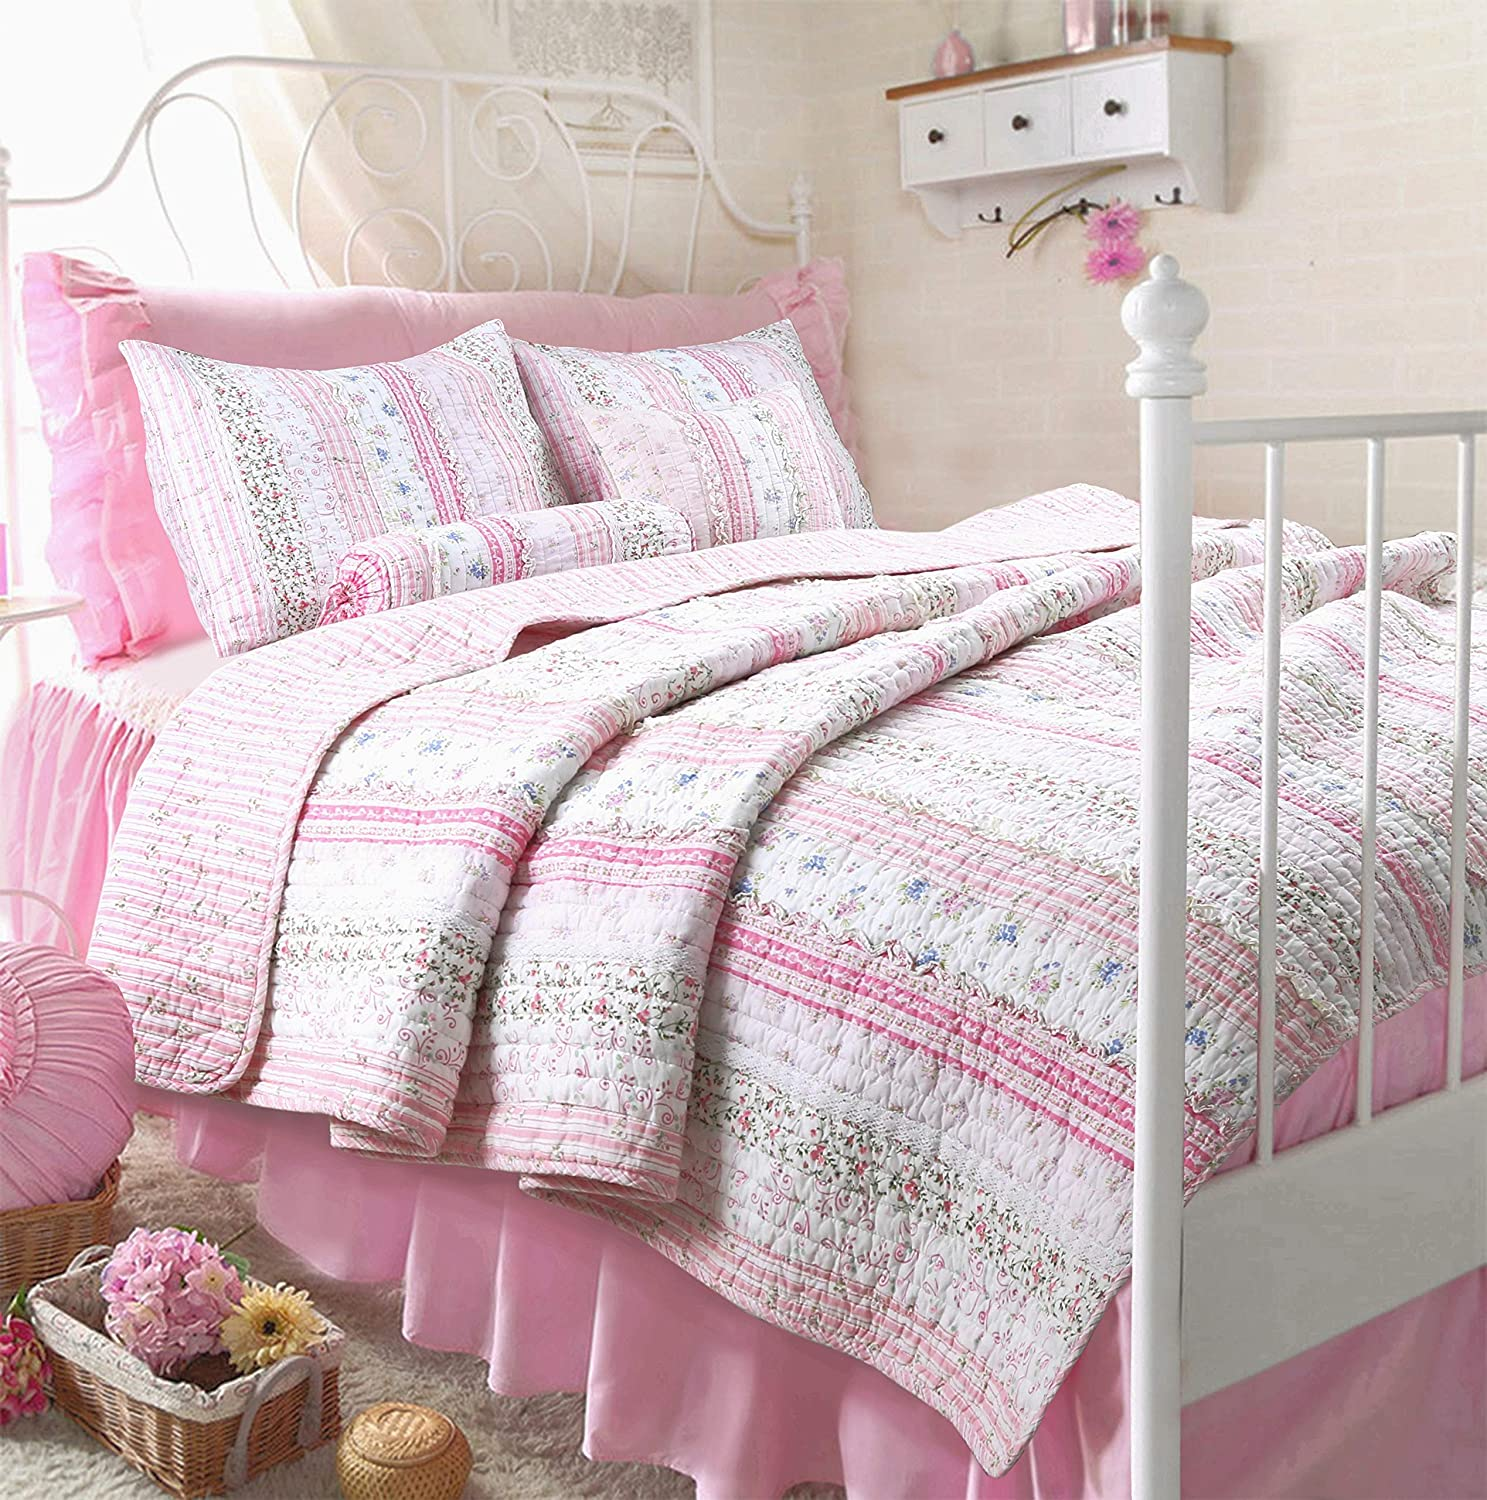 Cozy Line Home Fashions Pink Rose Blue Flower Floral Printed Lace Stripe 100% Cotton Bedding Quilt Set Reversible Coverlet Bedspread (Pink Lace, Twin - 2 Piece)